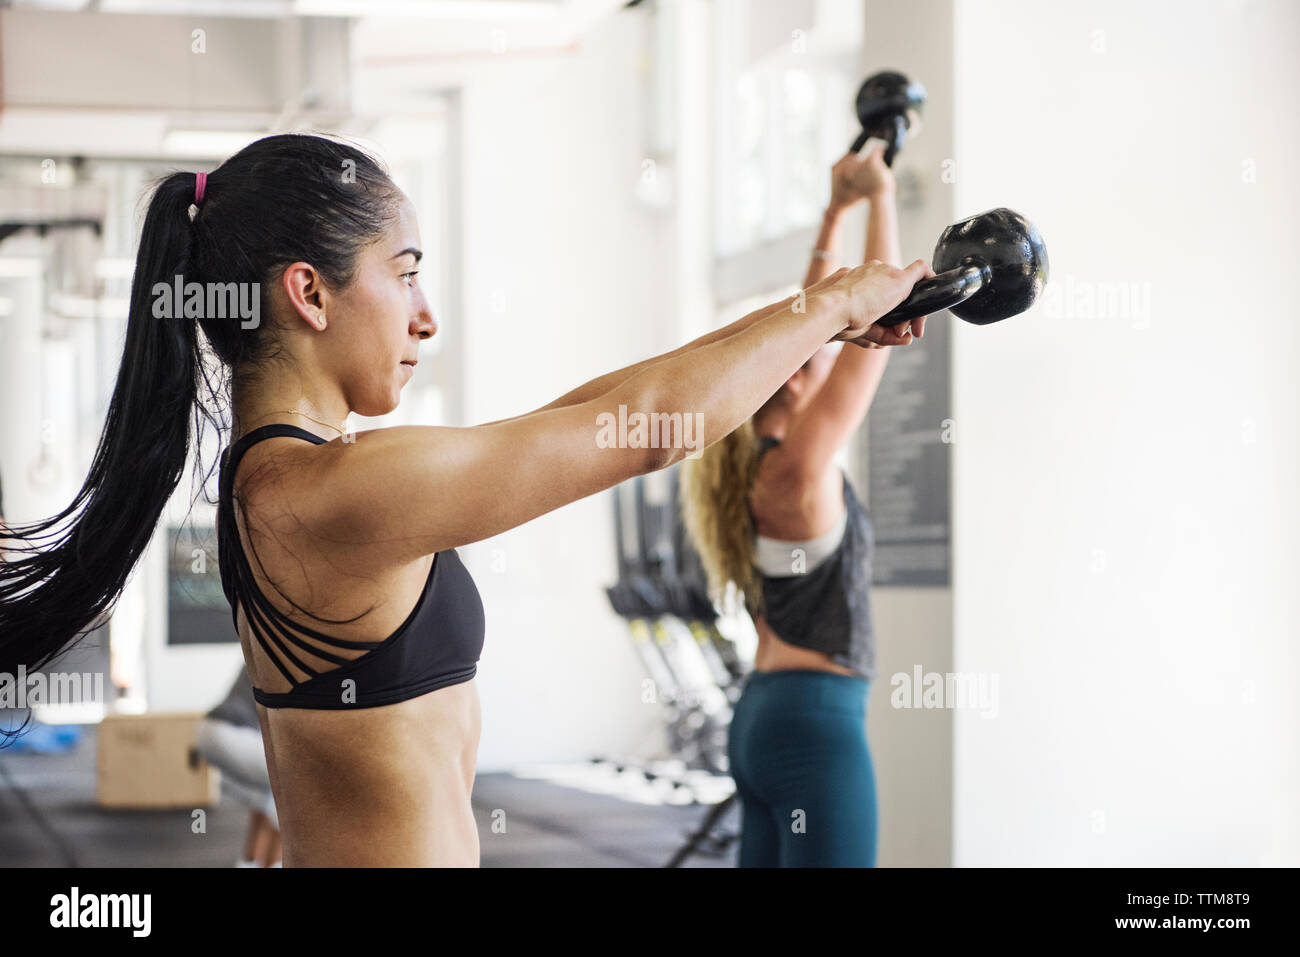 Determined athletes exercising with kettlebells in crossfit gym - Stock Image